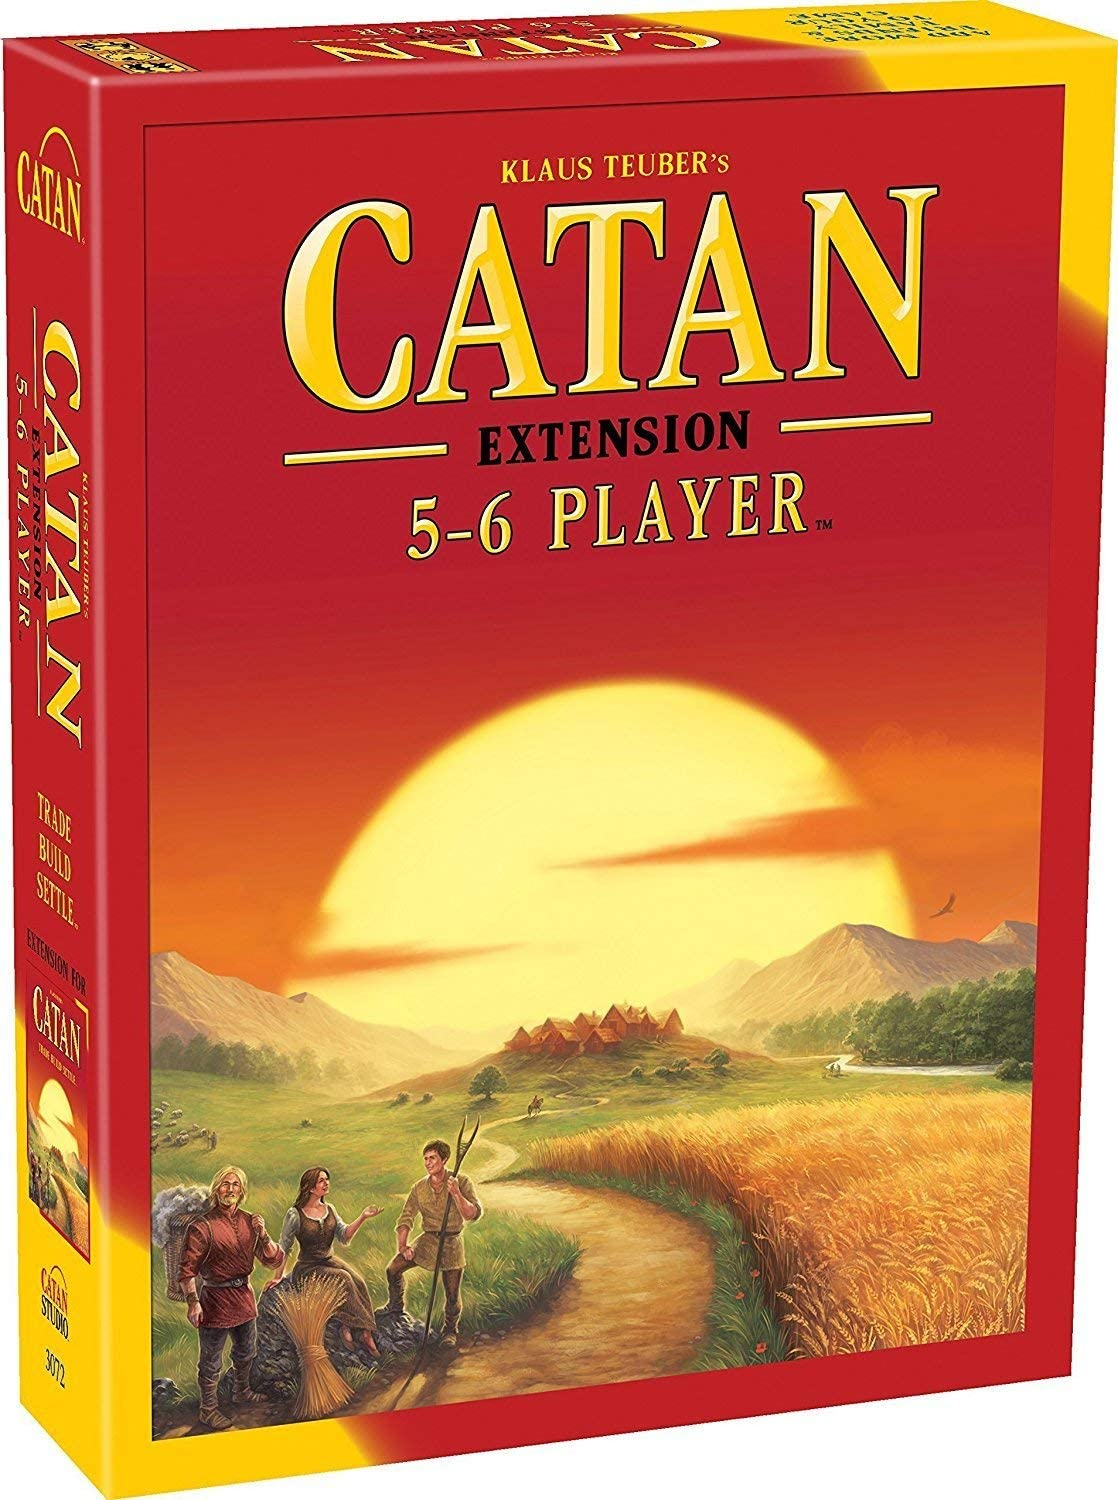 Catan Board Game Extension Allowing a Total of 5 to 6 Players for The Catan Board Game | Family Board Game | Board Game for Adults and Family | Adventure Board Game | Made by Catan Studio